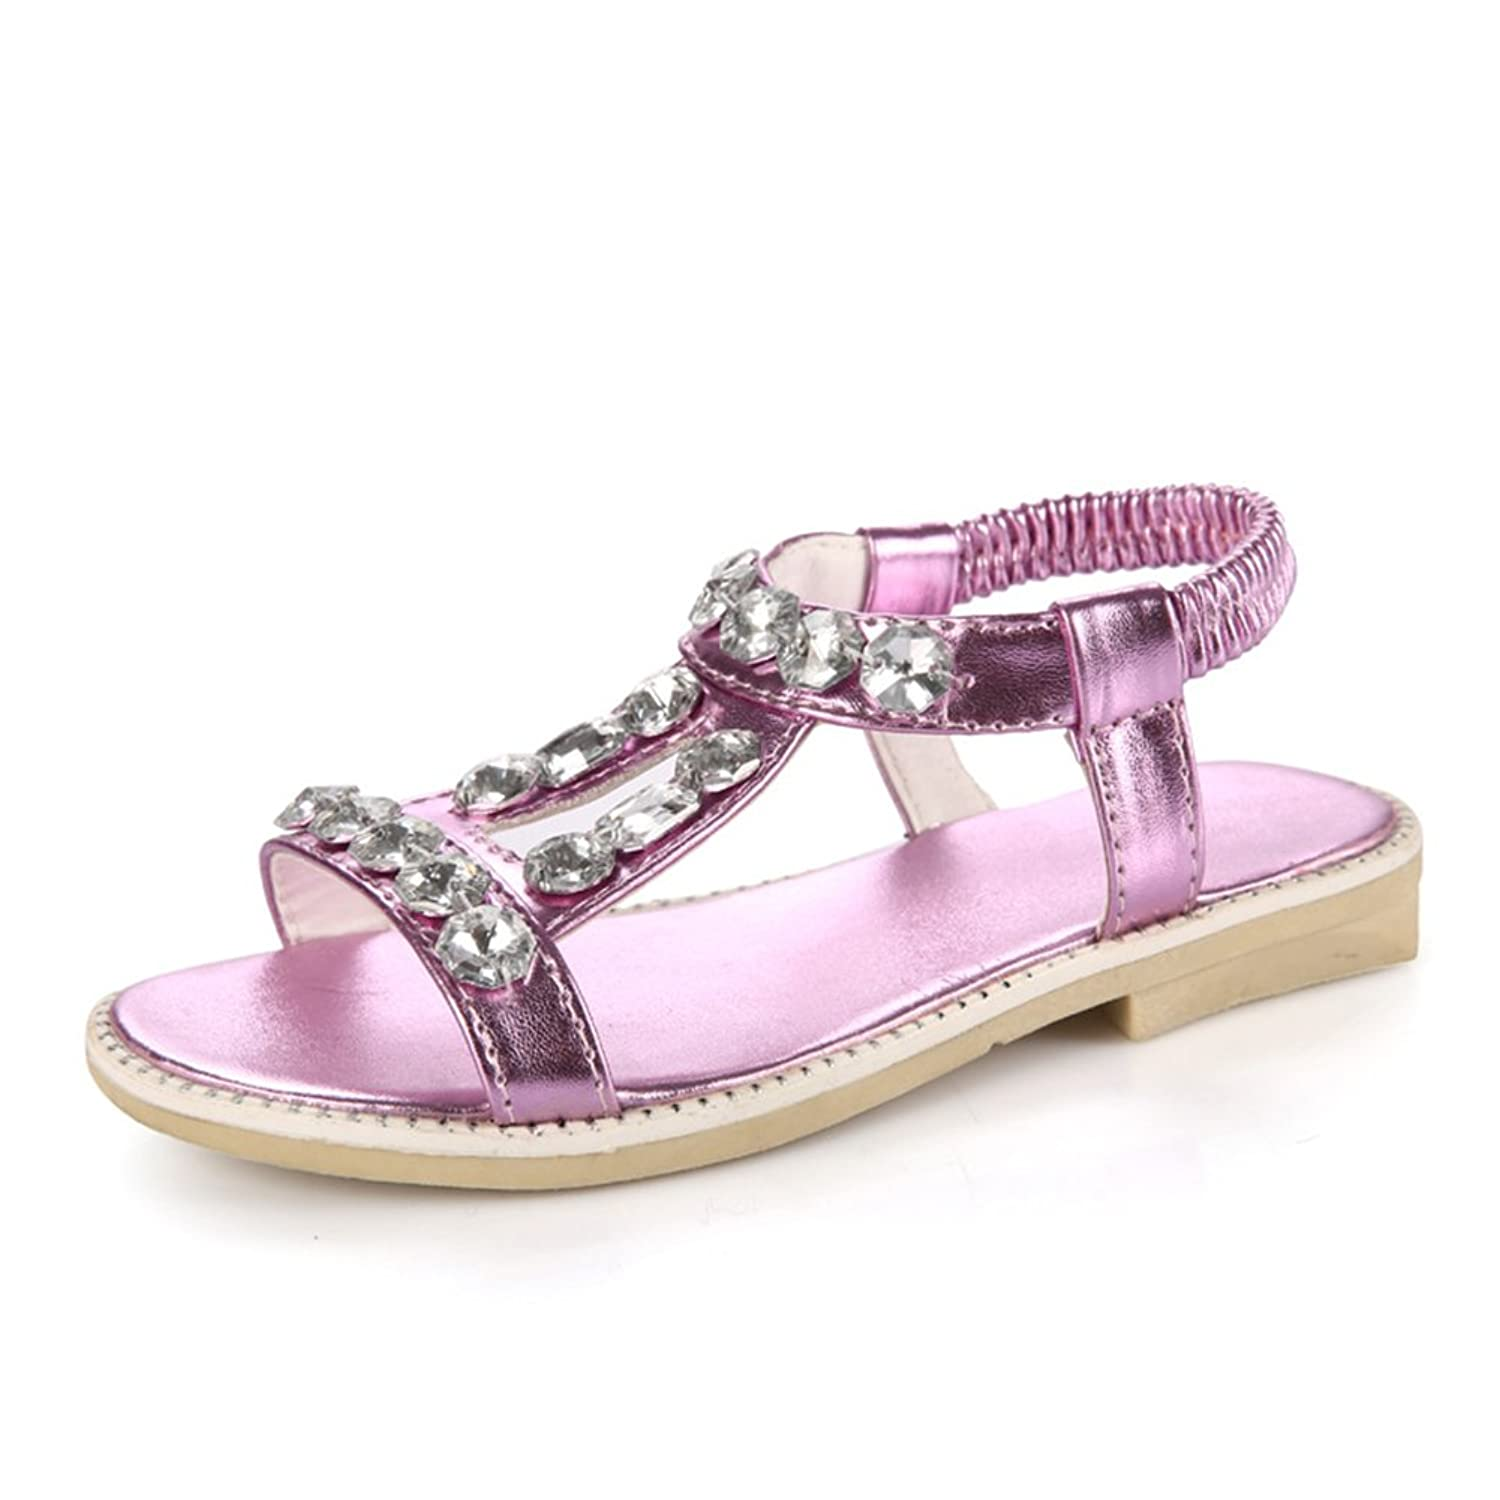 6c828206f0f6a Beude Jeweled Cute Summer Little Girls Toddler Sandals  5MjuC0609263 ...